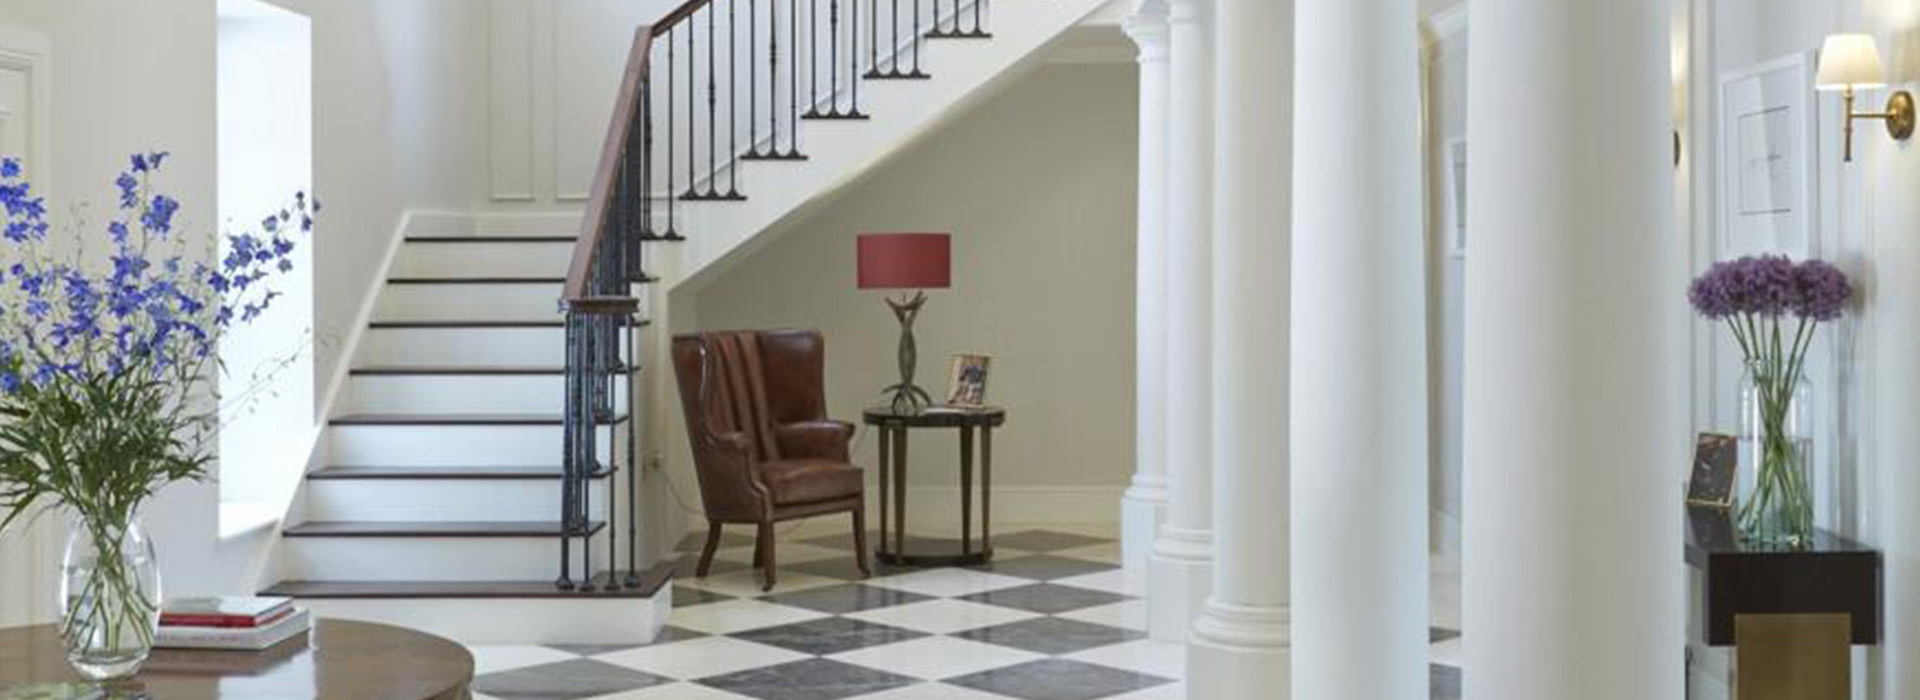 Double height entrance hall